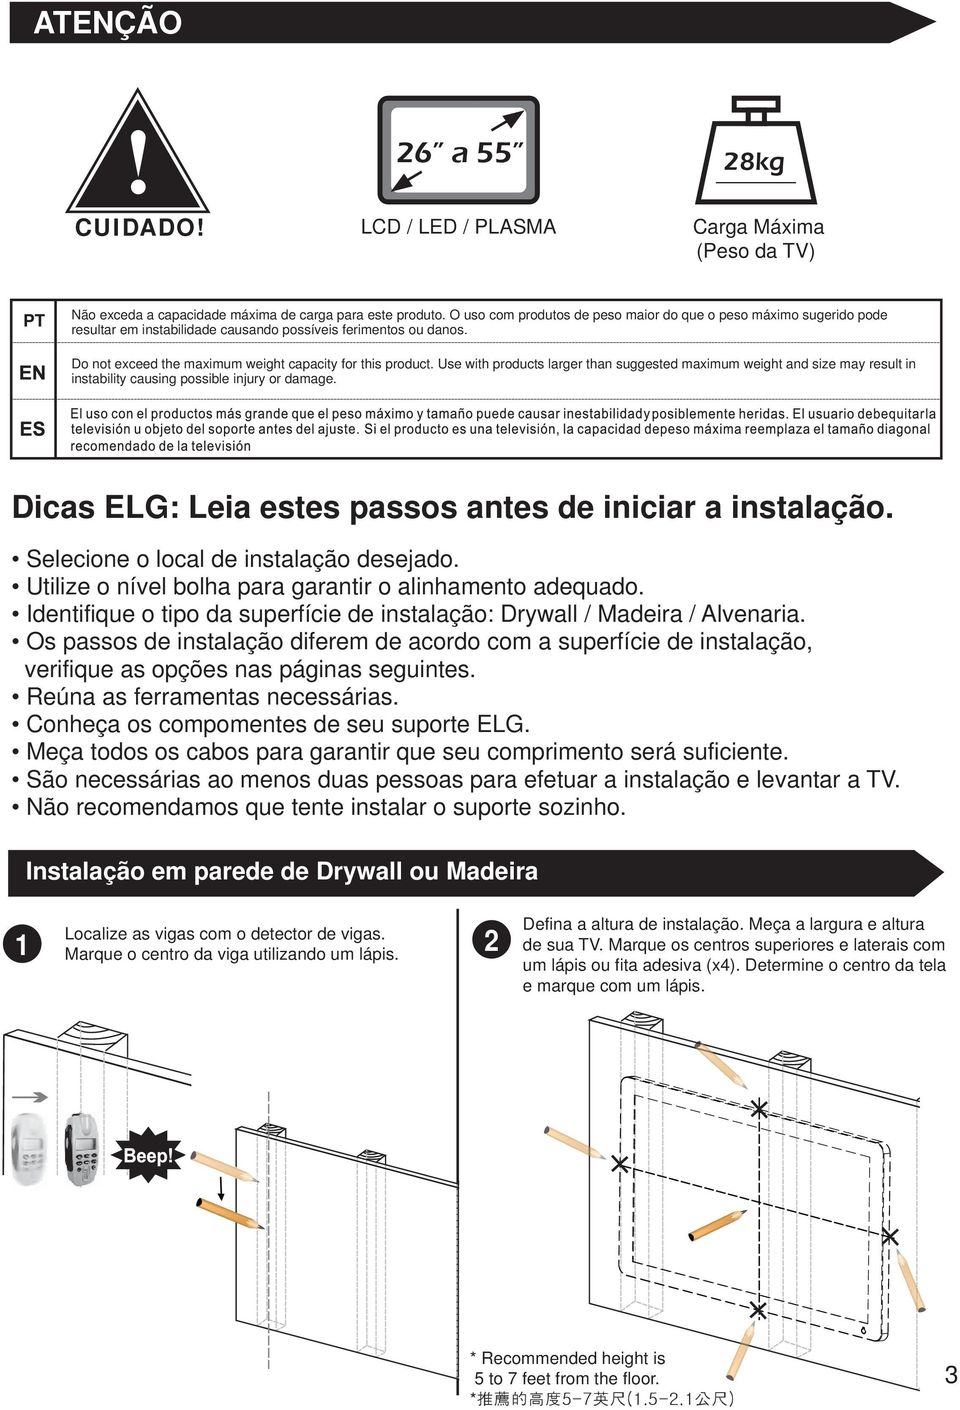 Use with products larger than suggested maximum weight and size may result in instability causing possible injury or damage. Dicas ELG: Leia estes passos antes de iniciar a instalação.